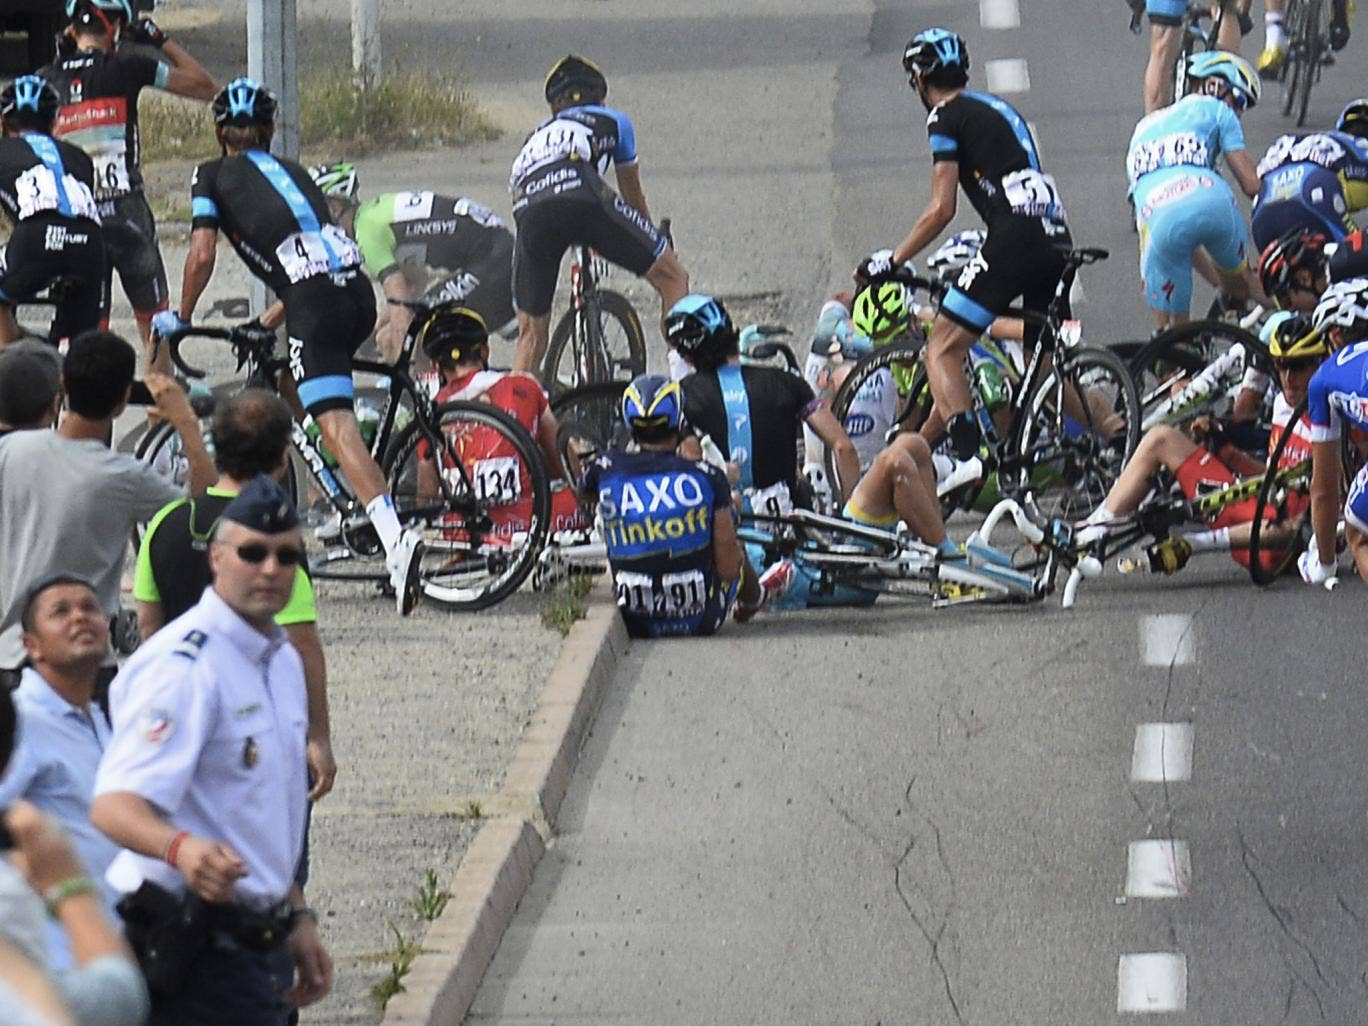 Alberto Contador (no 91) sits on the road after the crash